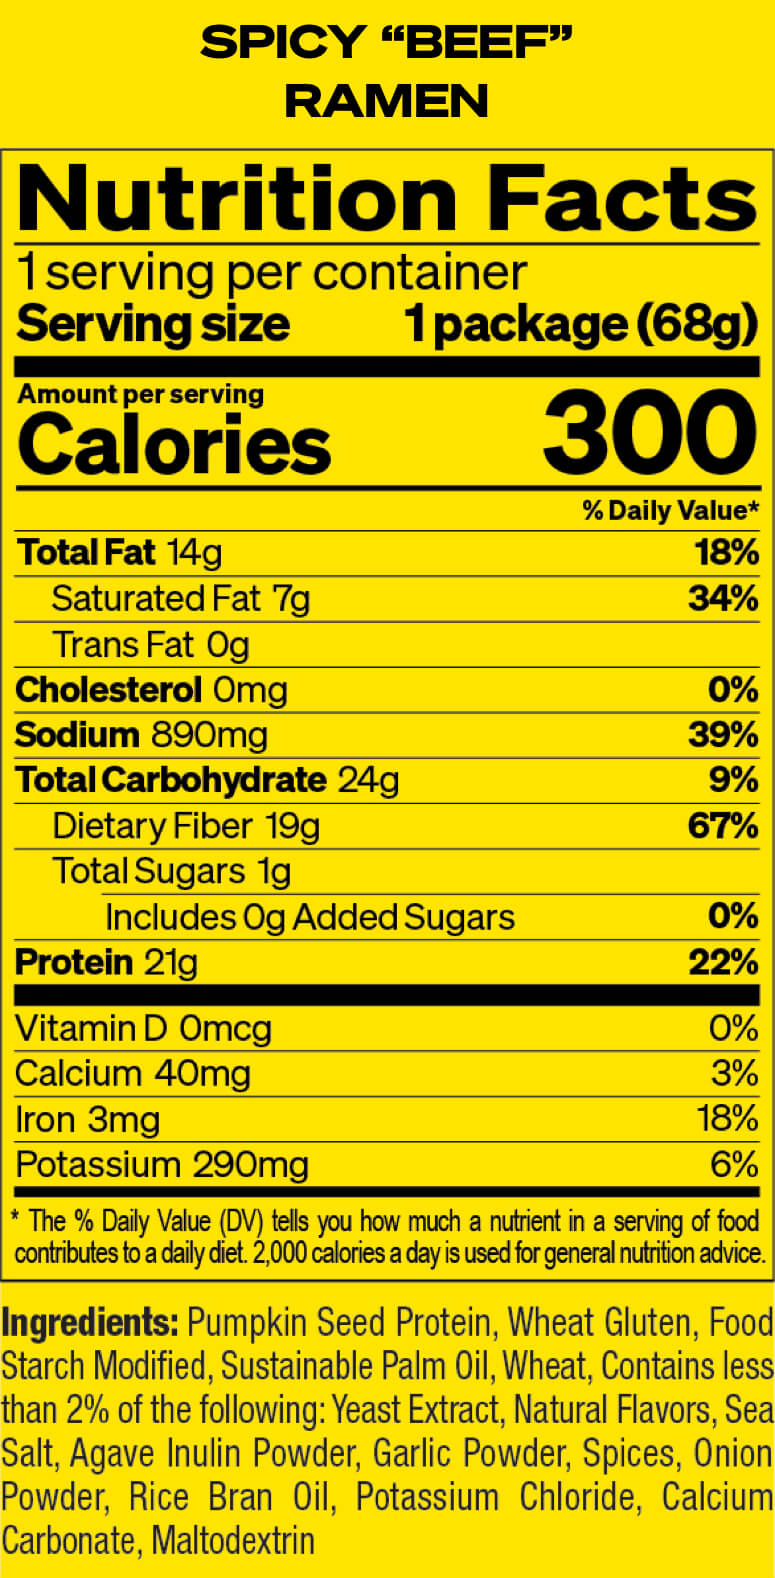 Spicy Beef Nutrition Facts